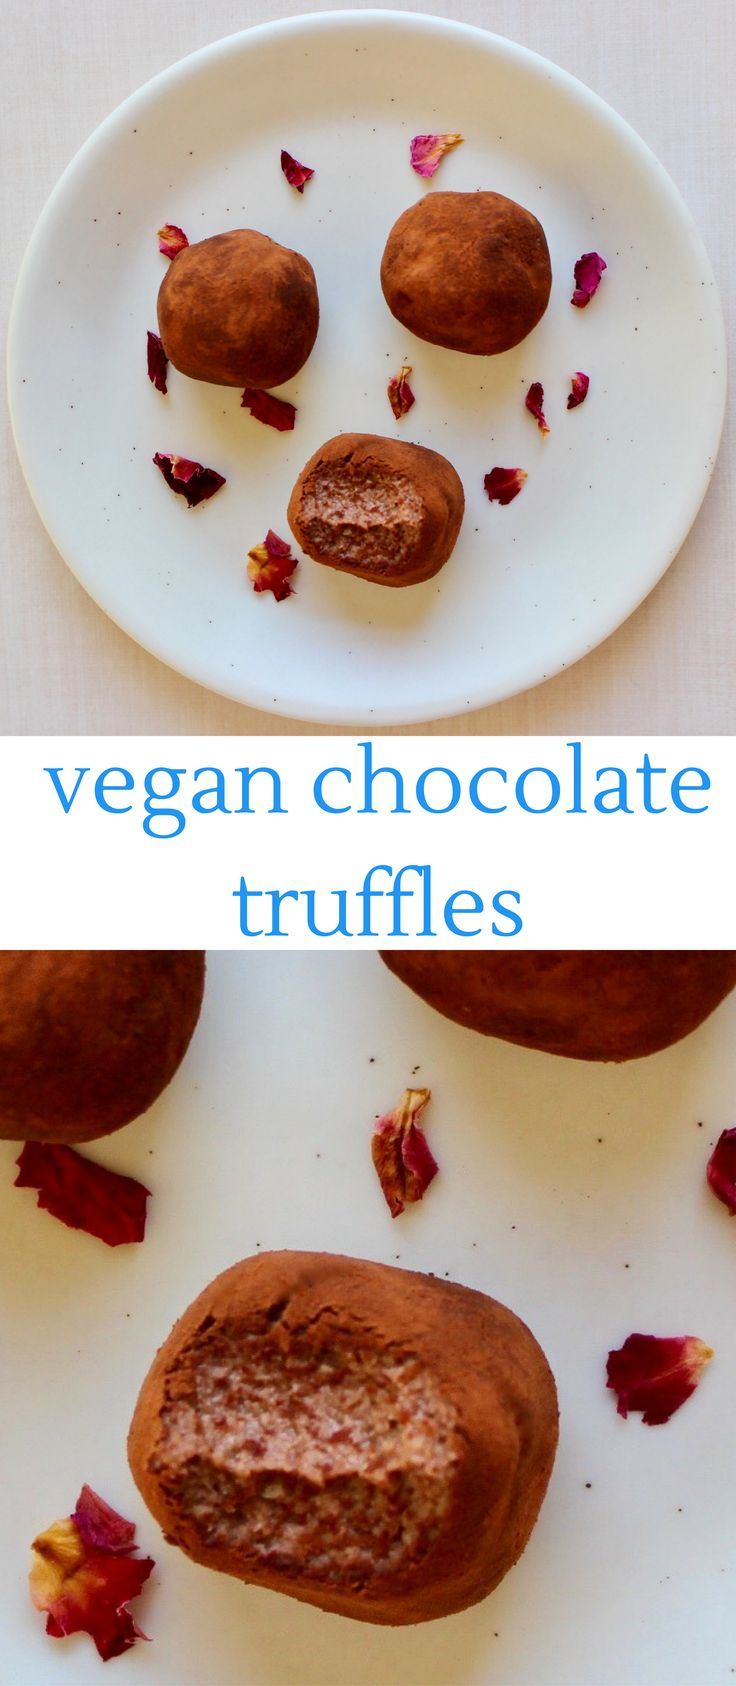 These Vegan Cashew Chocolate Truffles are the most delicious treat – they're melt-in-your-mouth silky, super creamy, and unbelievably healthy! Also refined sugar free.